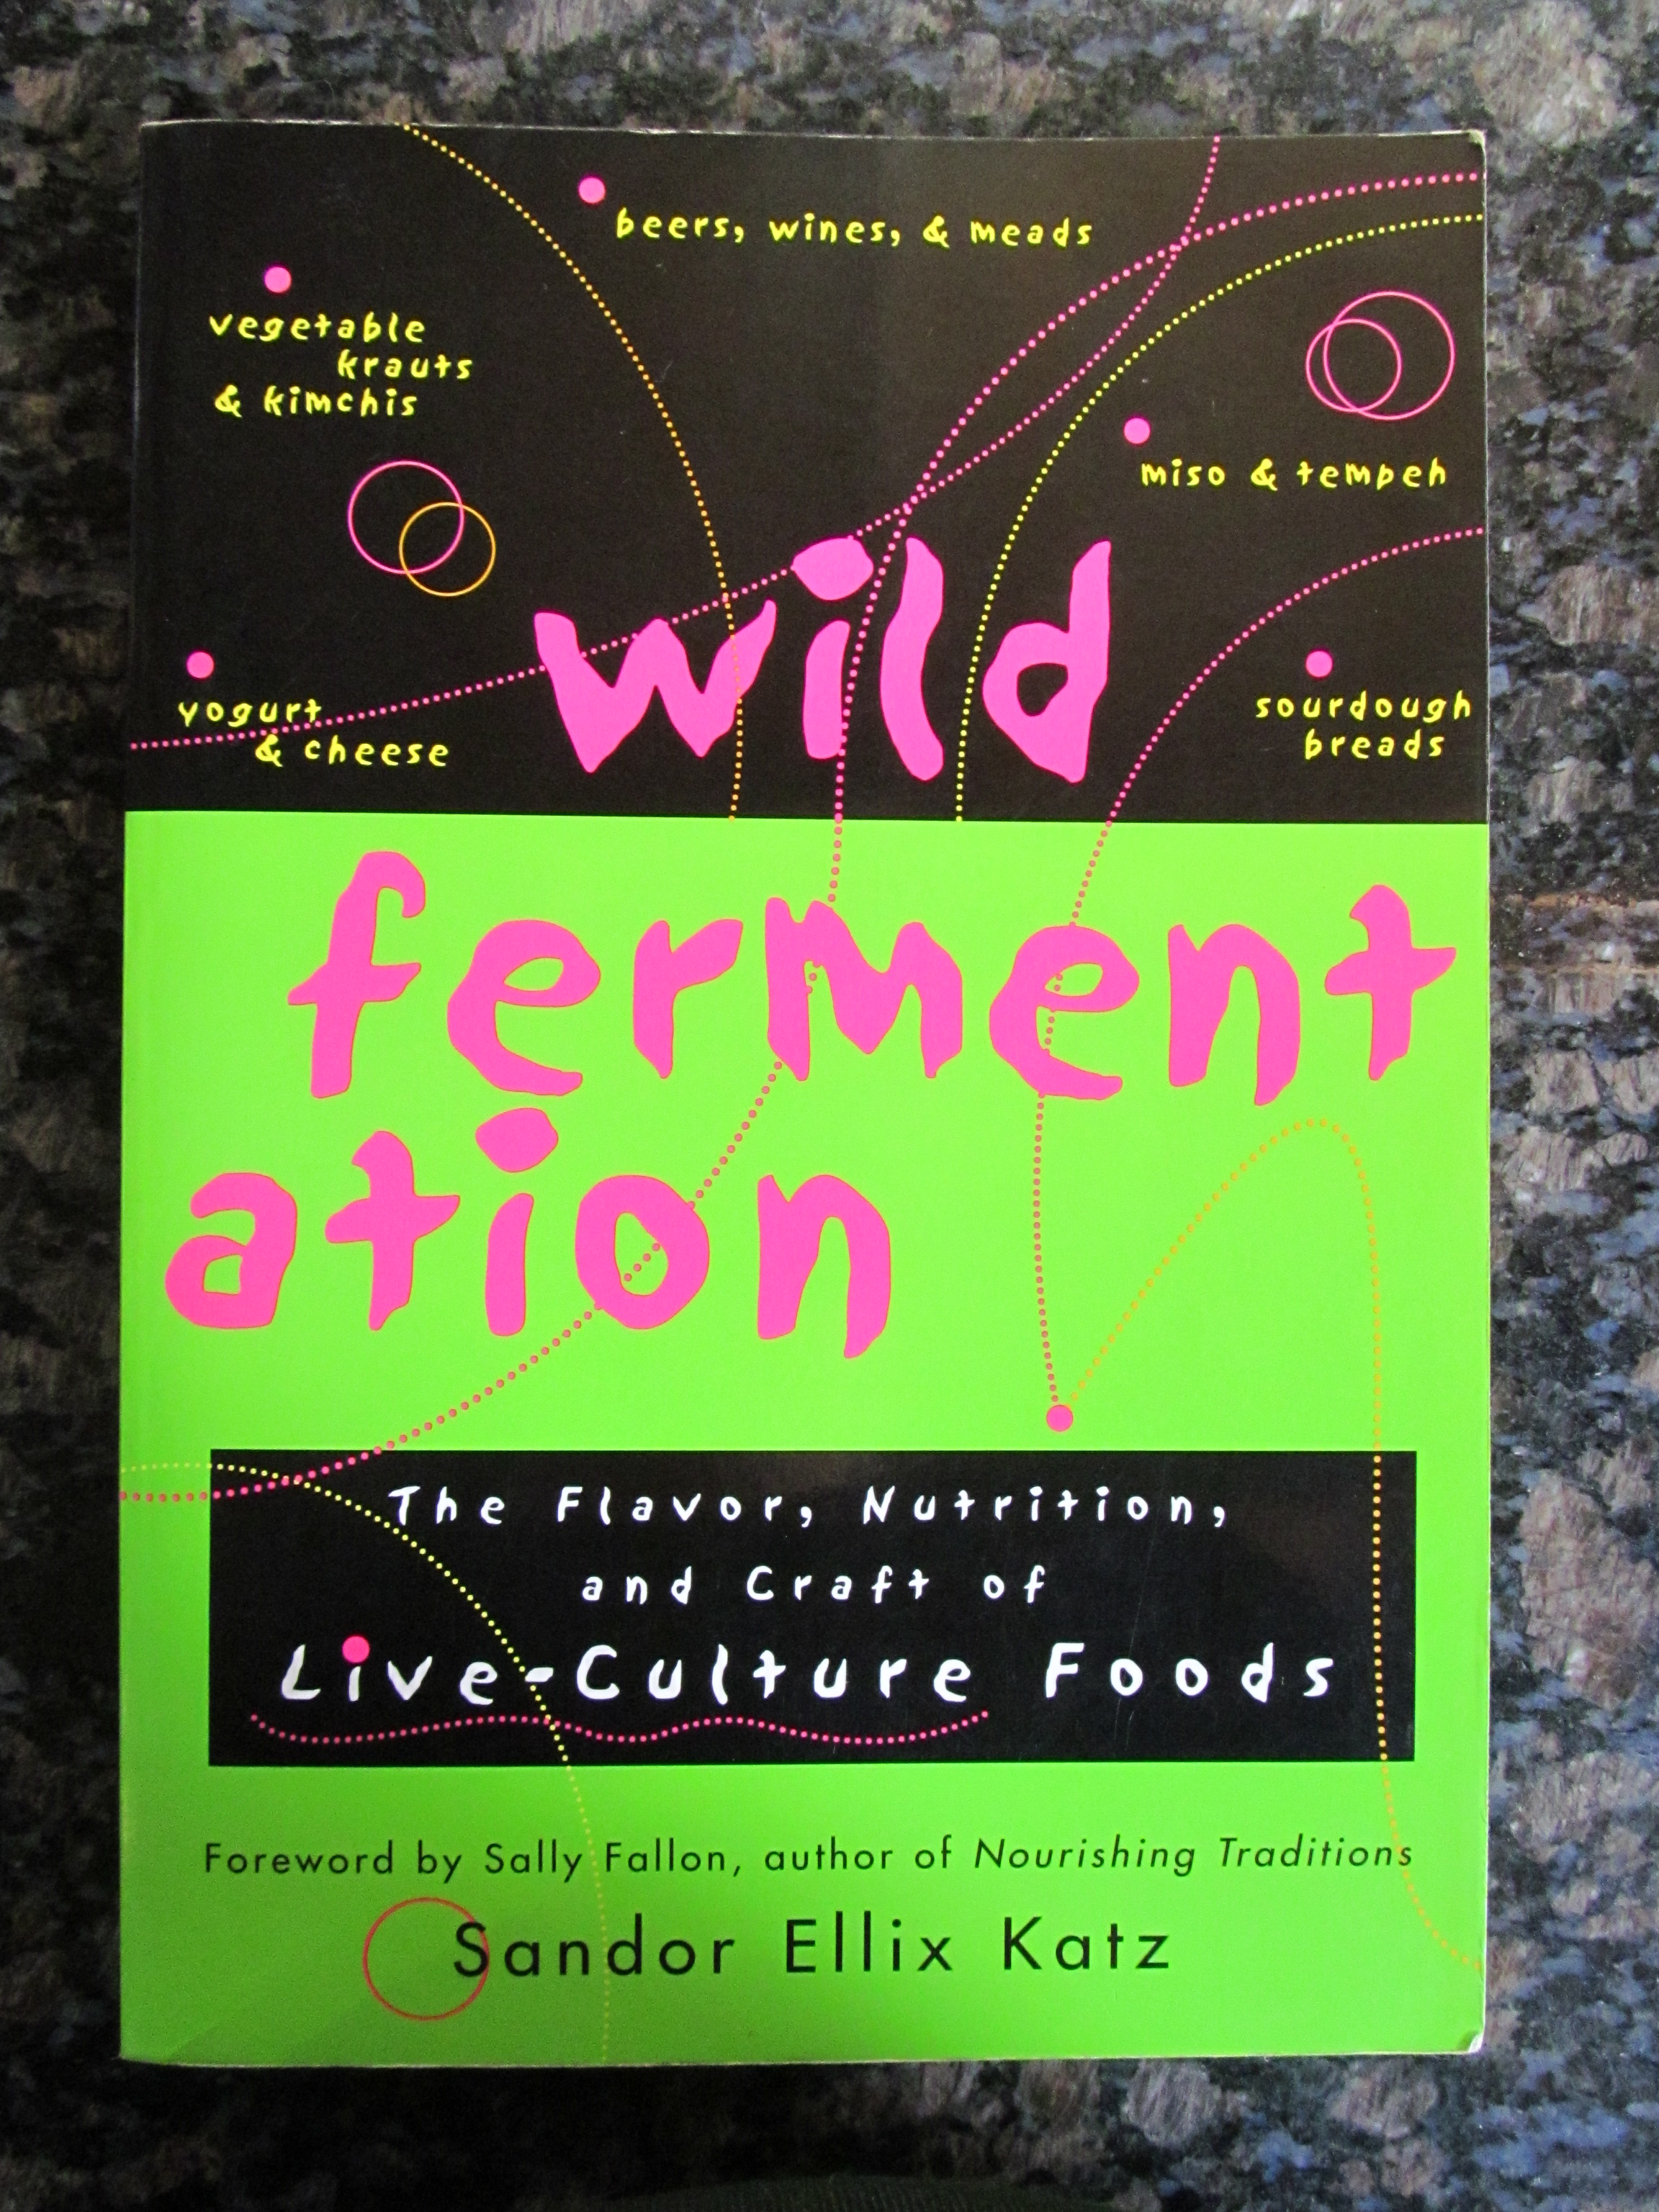 Book Review--Wild Fermentation | Fermentools.com